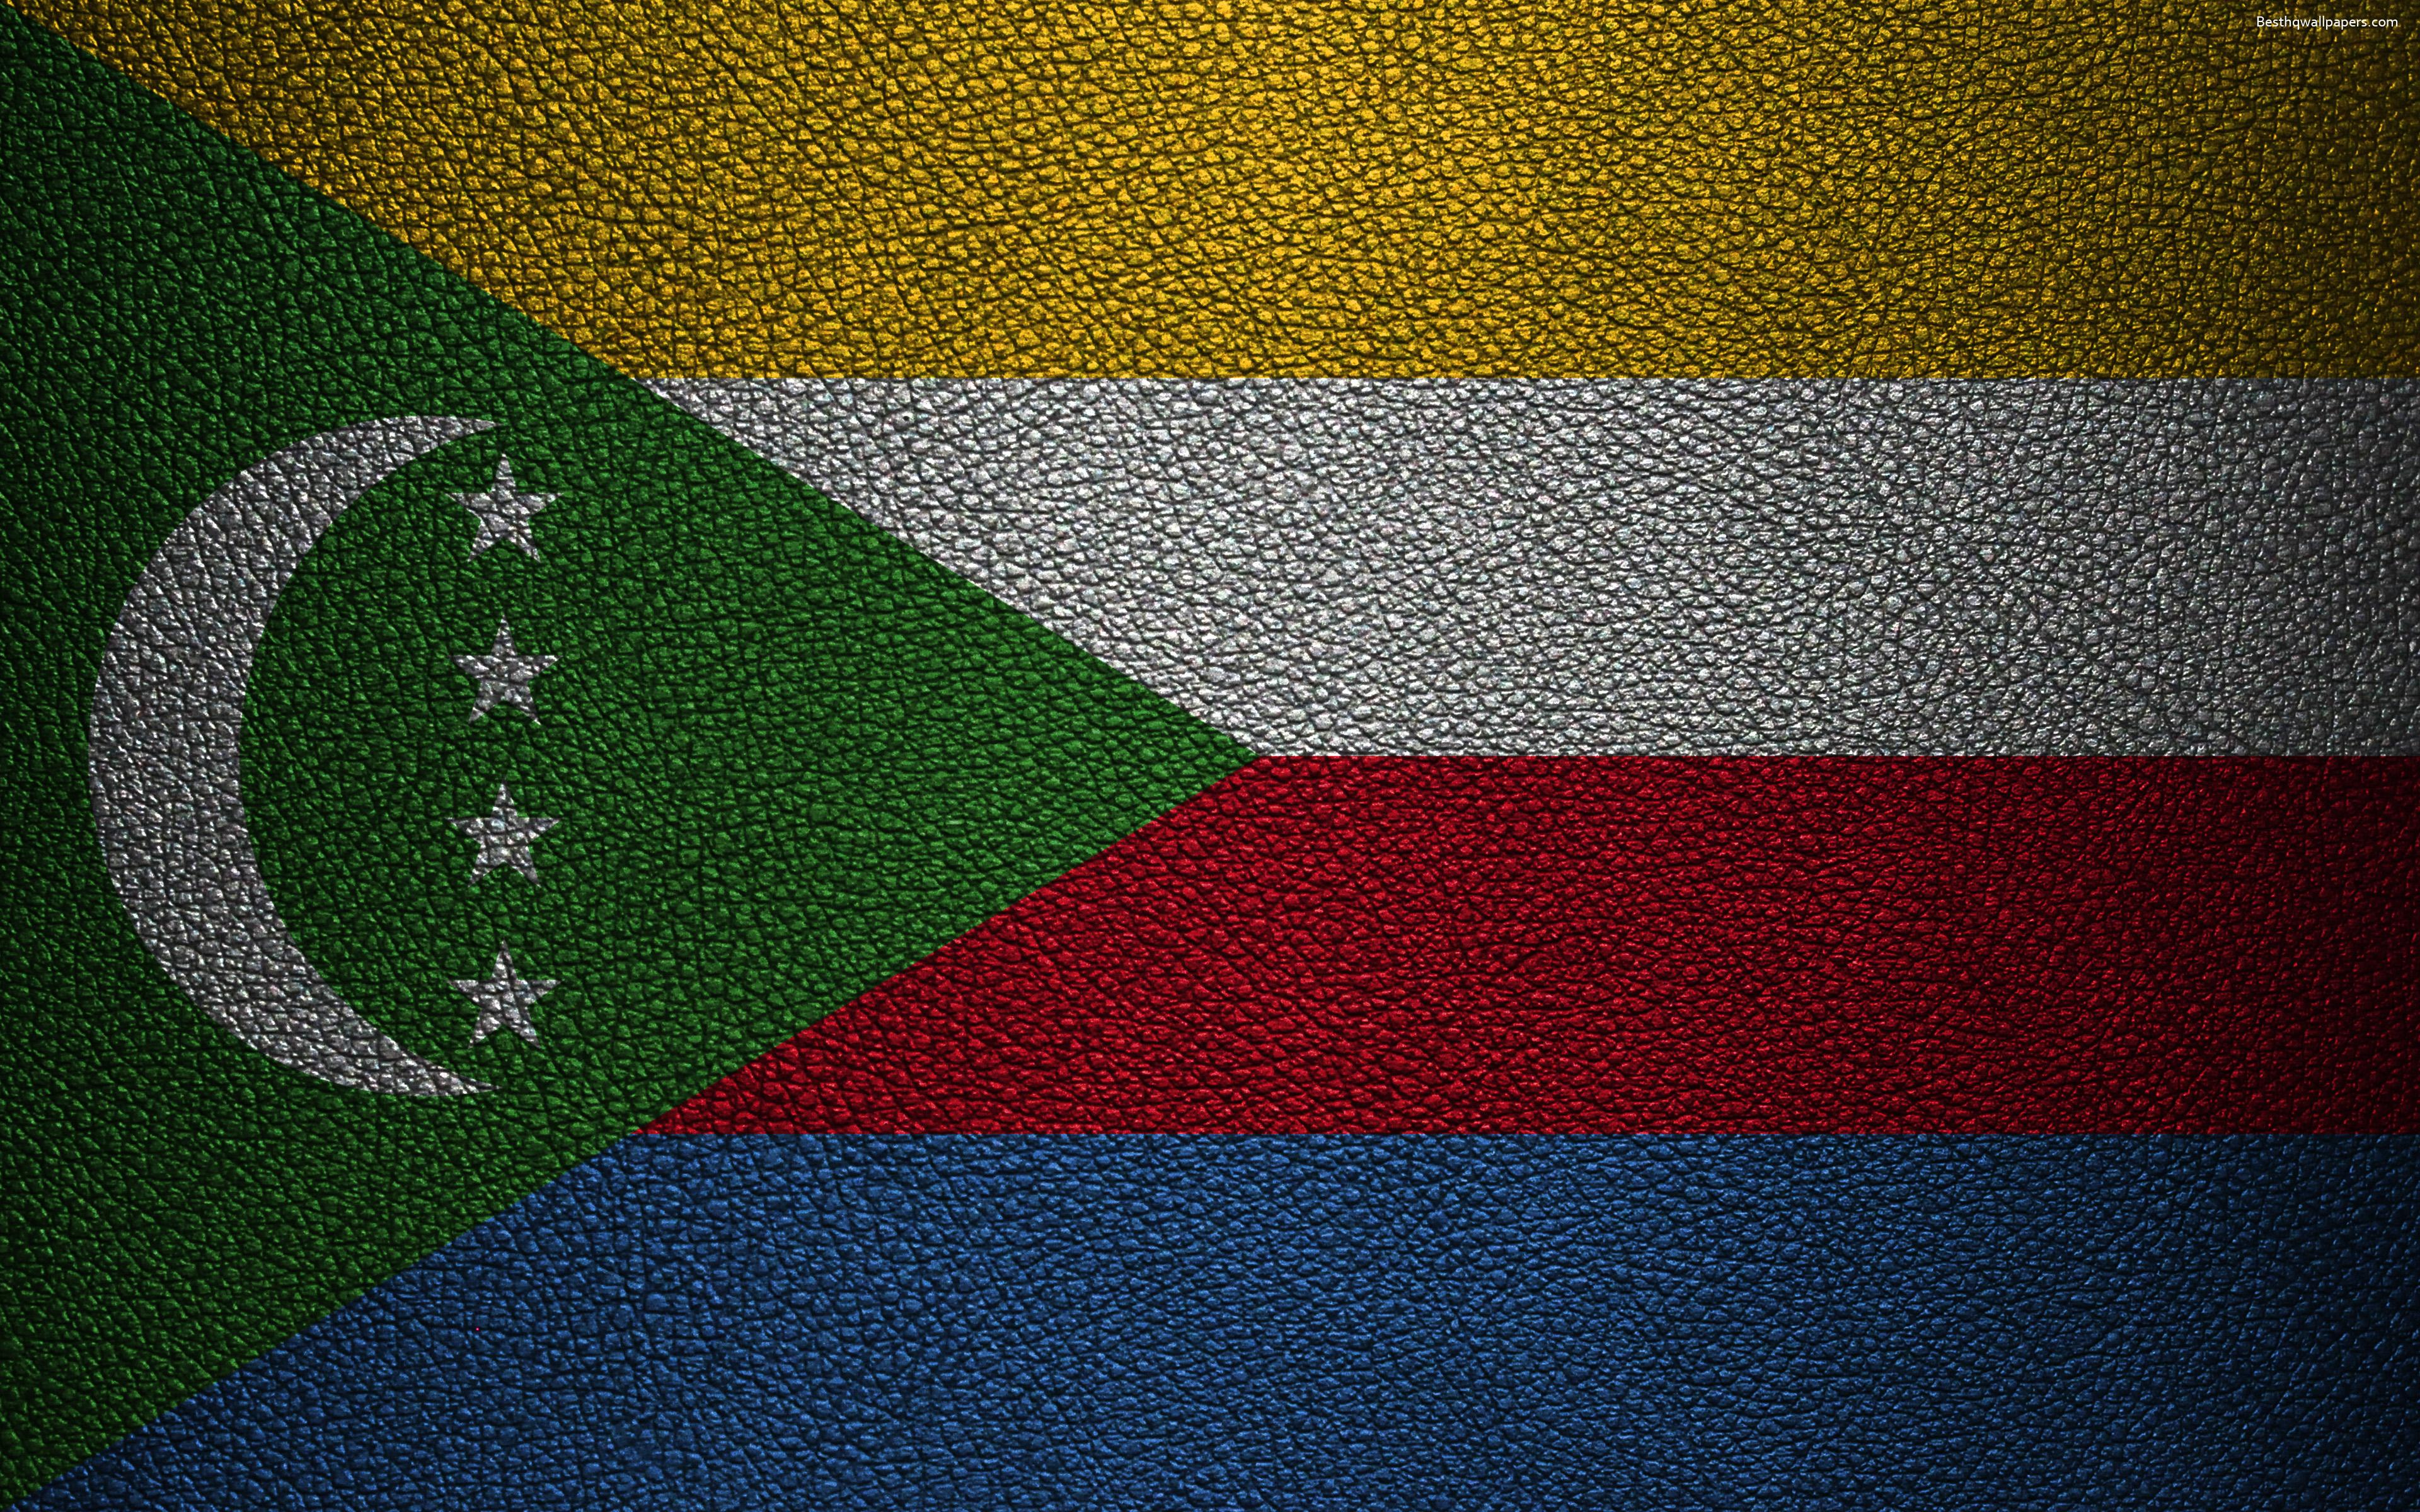 Download wallpapers Flag of Comoros, 4k, leather texture, Africa